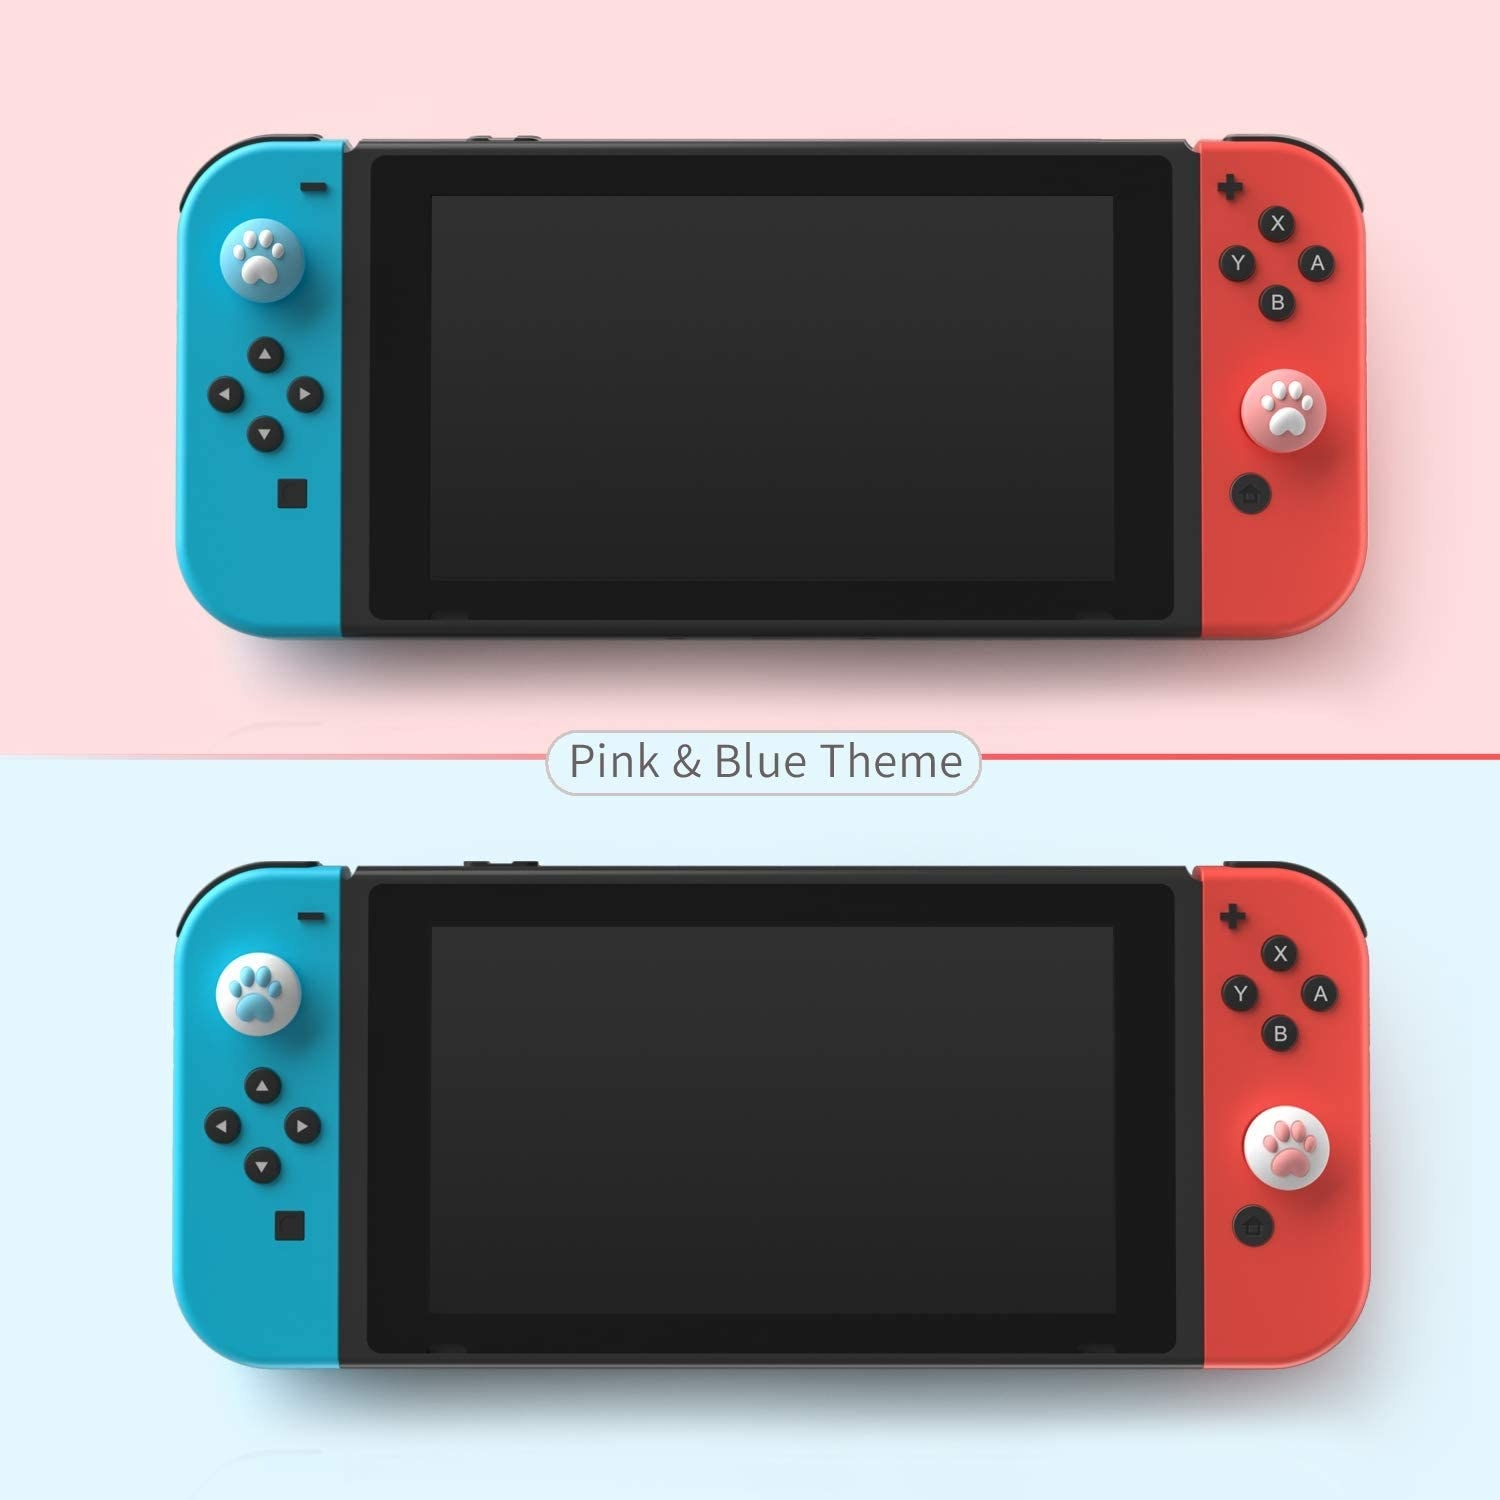 switches with the paw print thumb covers attached in two color schemes